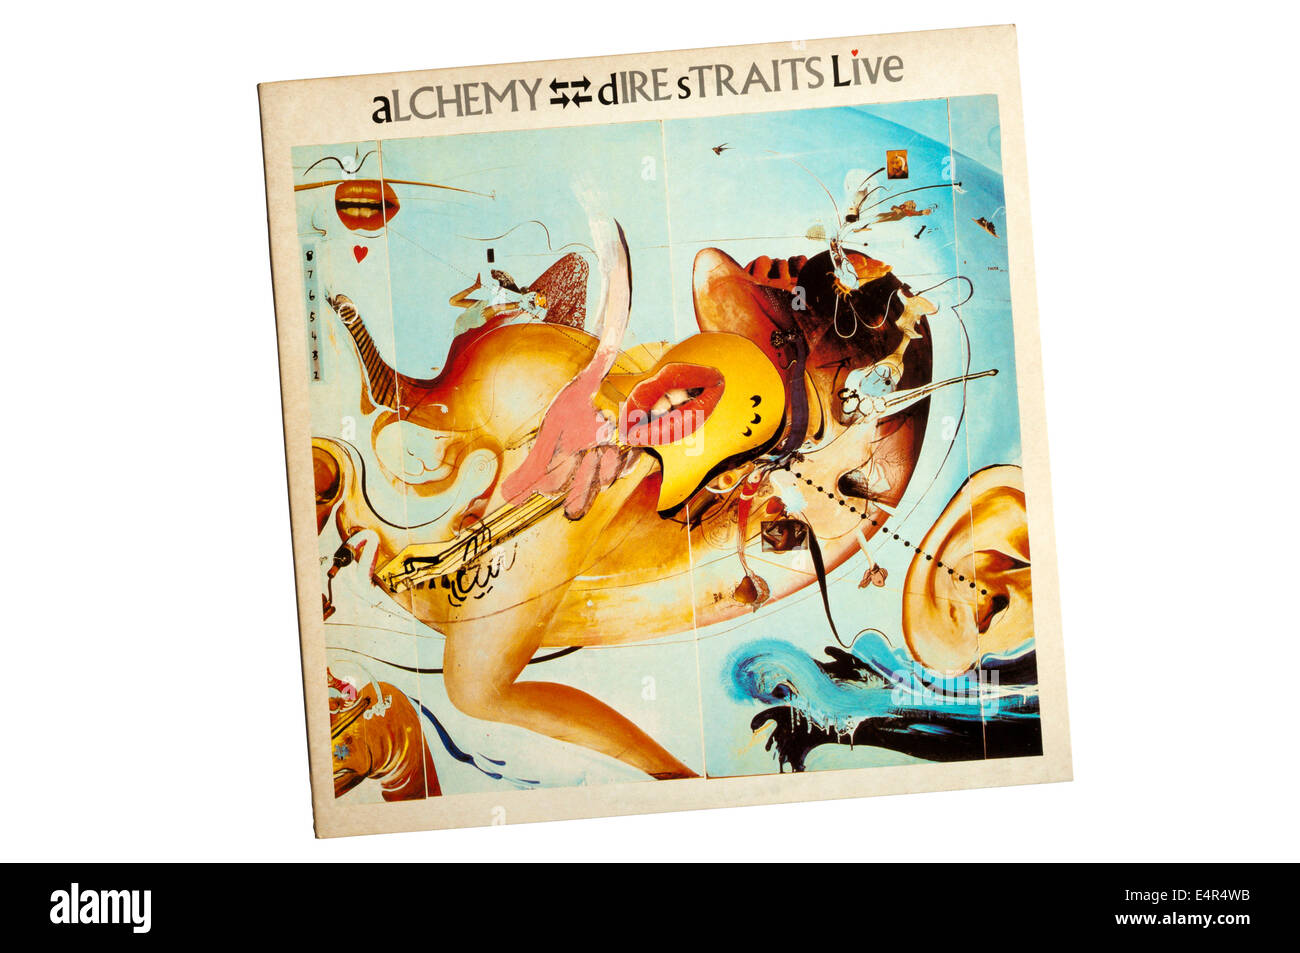 Alchemy: Dire Straits Live was a double album by British rock band Dire Straits, released in 1984. The band's - Stock Image